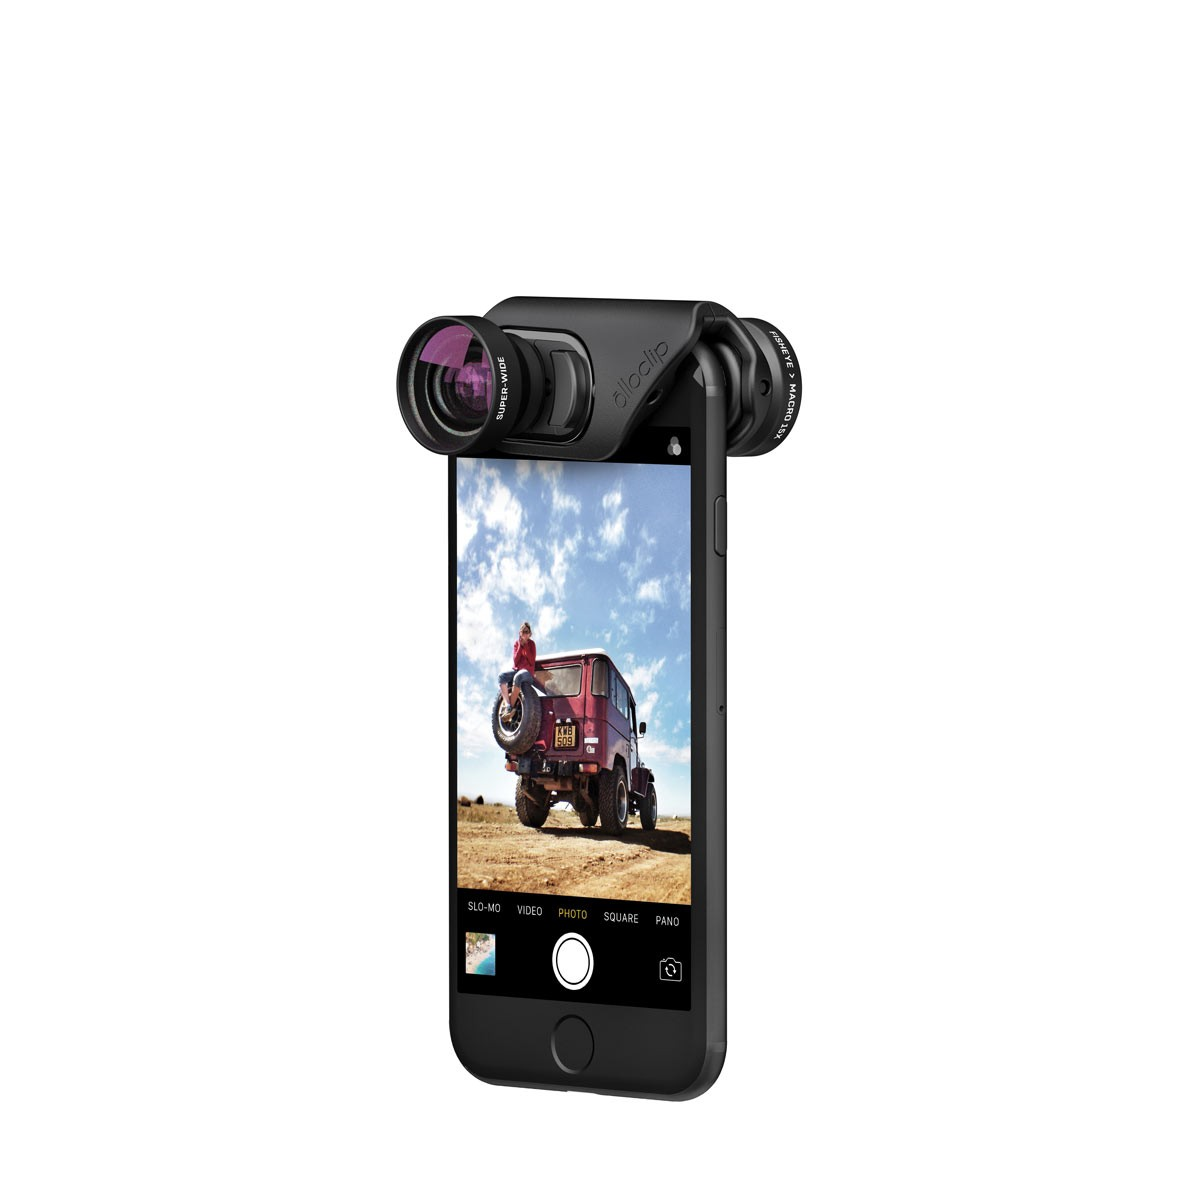 OlloClip - Core Lens for iPhone 7/7 Plus